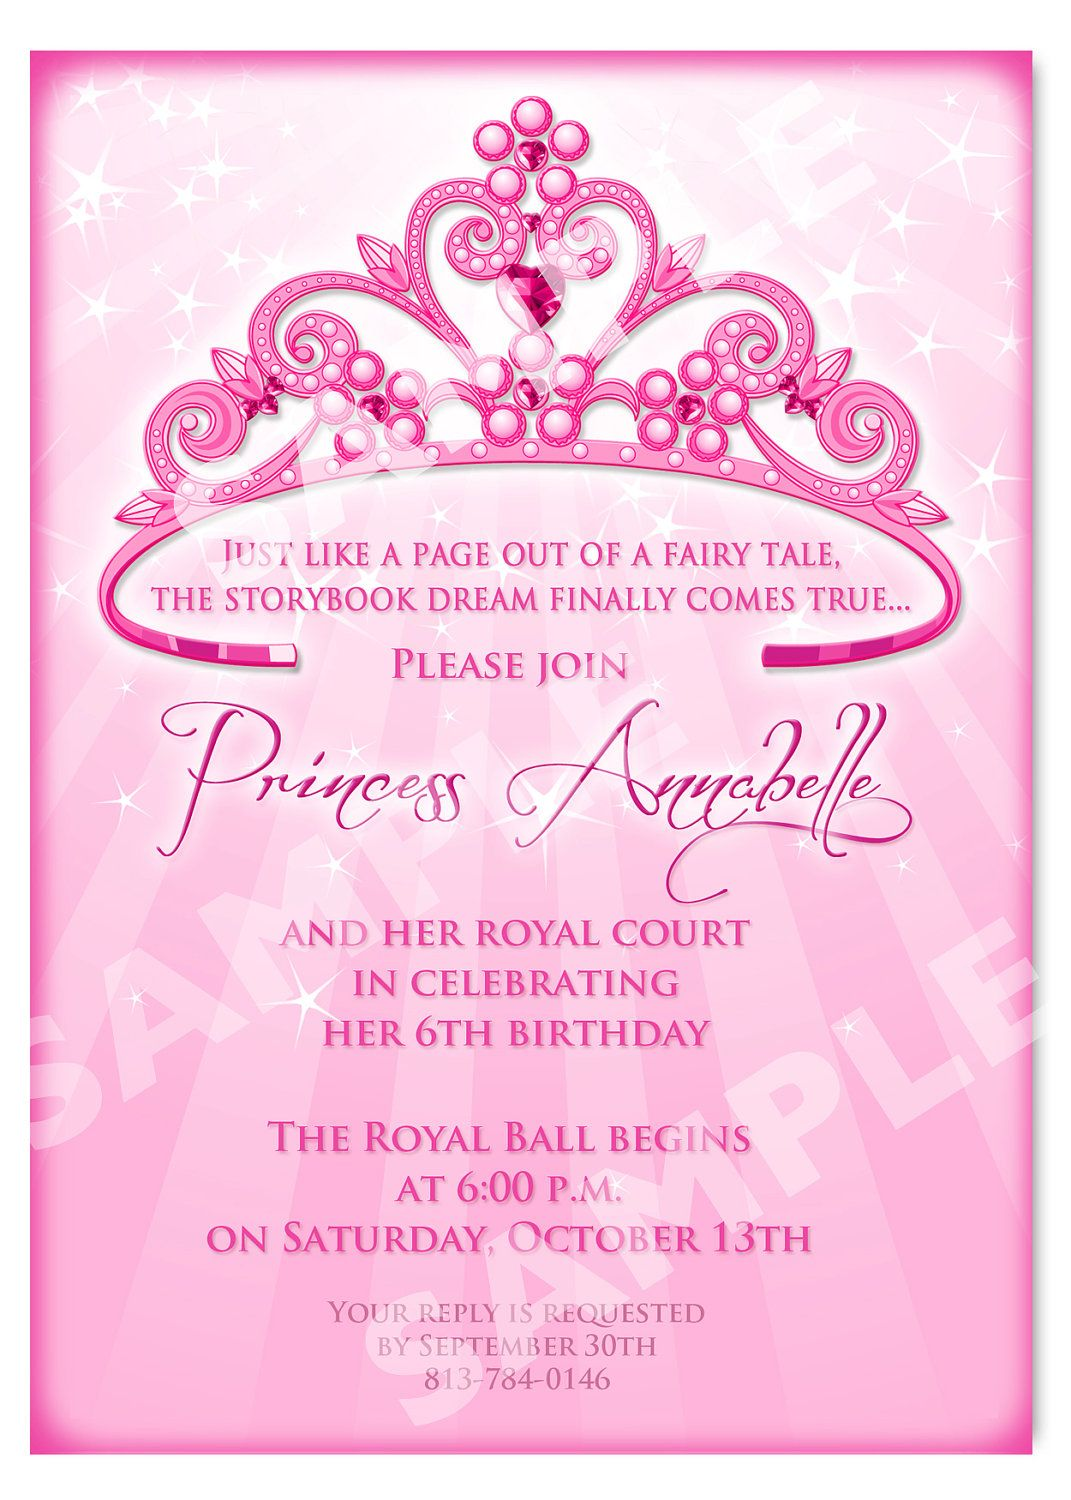 Printable Princess Invitation Cards Birthday Party Ideas - Royal birthday invitation template